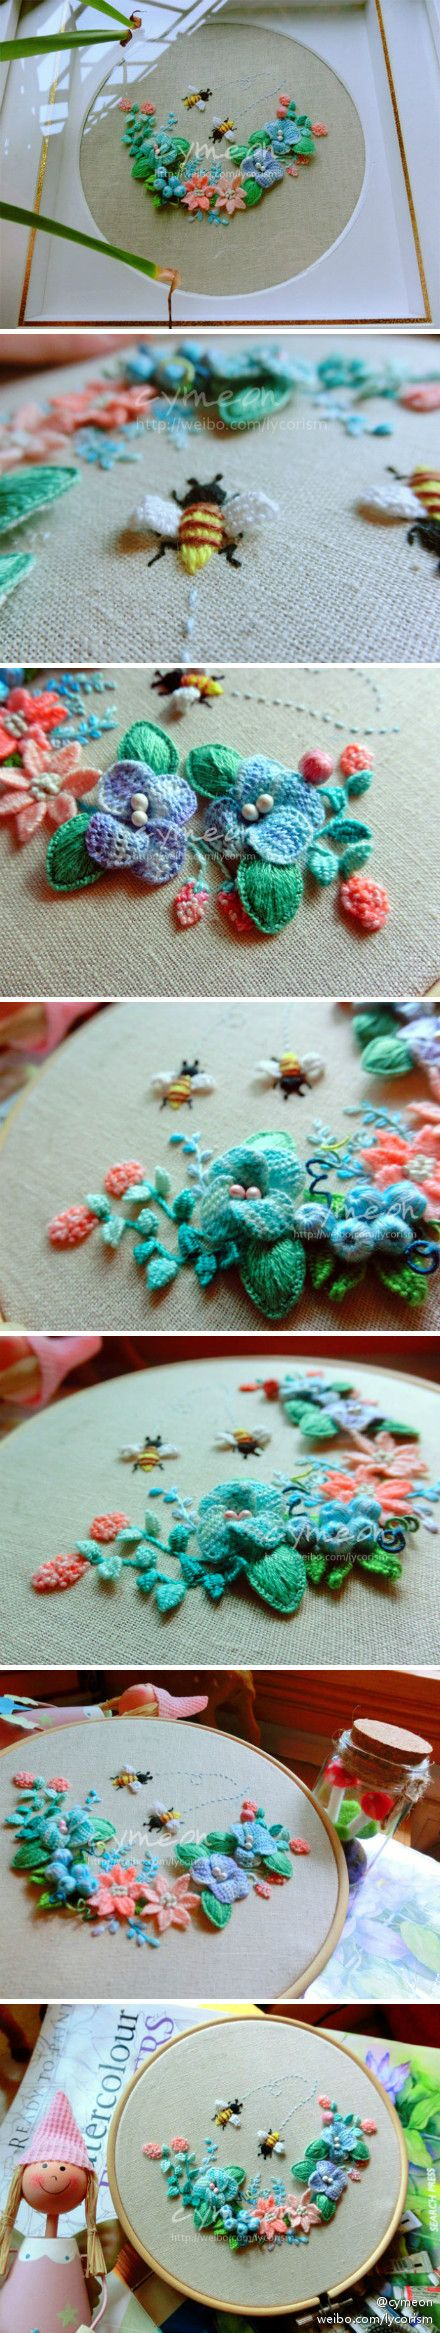 I ❤ stumpwork embroidery. . . love the 3D bees, flowers and leaves